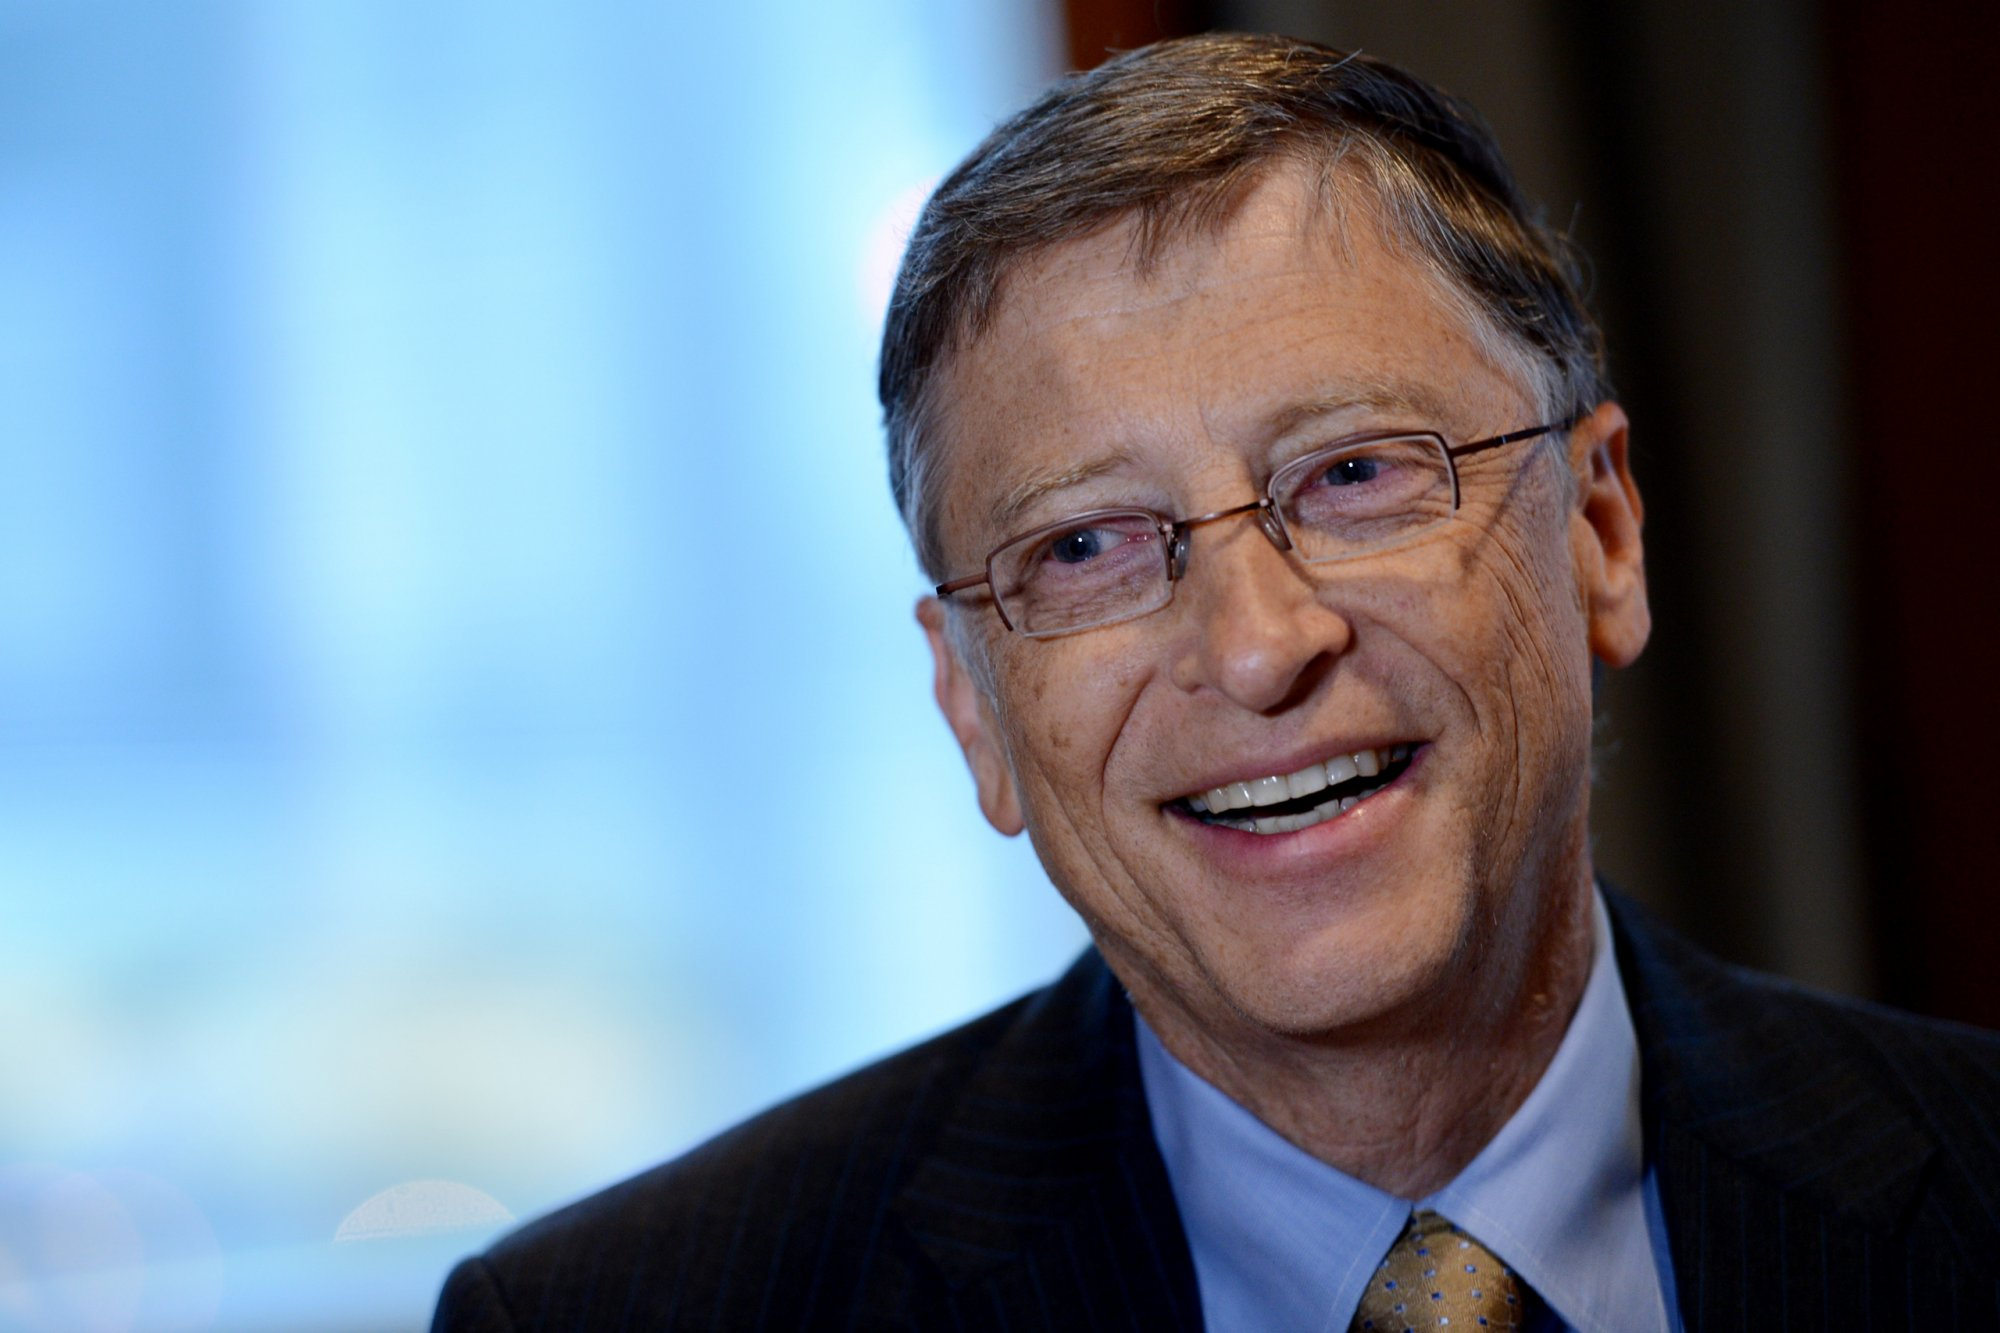 bill gates smile wallpaper 61168